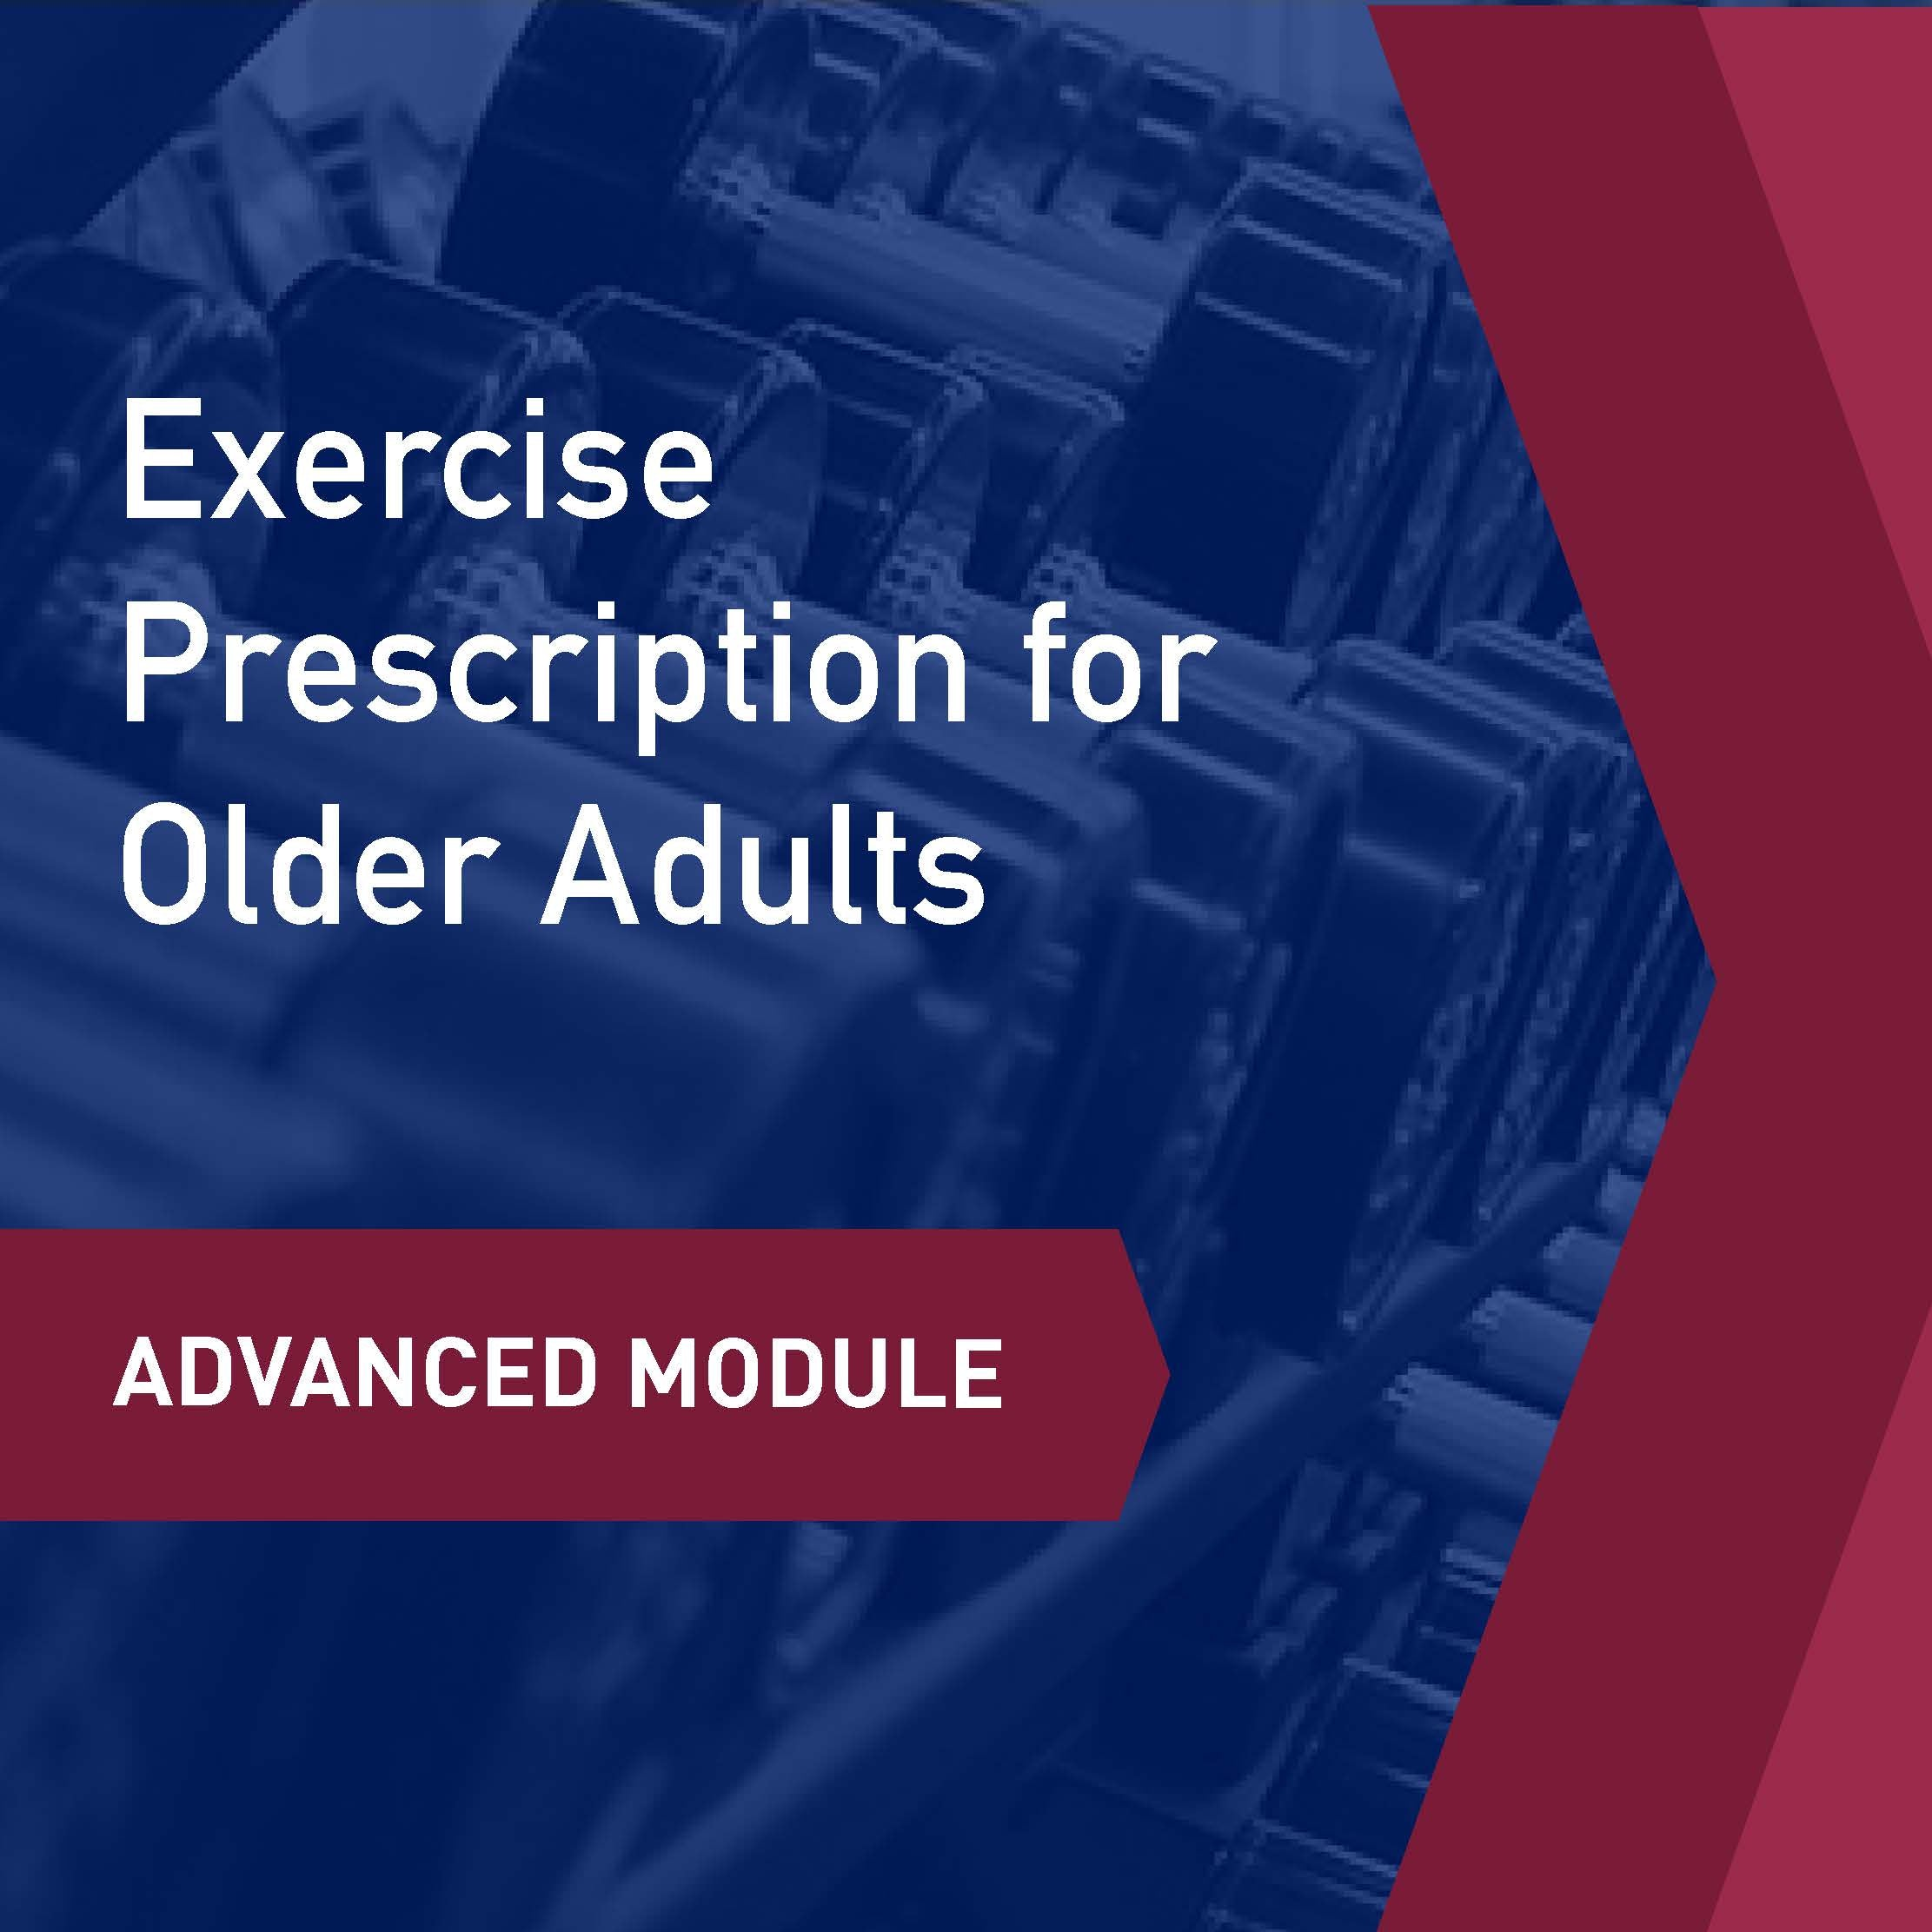 Advanced Learning Module: Exercise Prescription for Older Adults